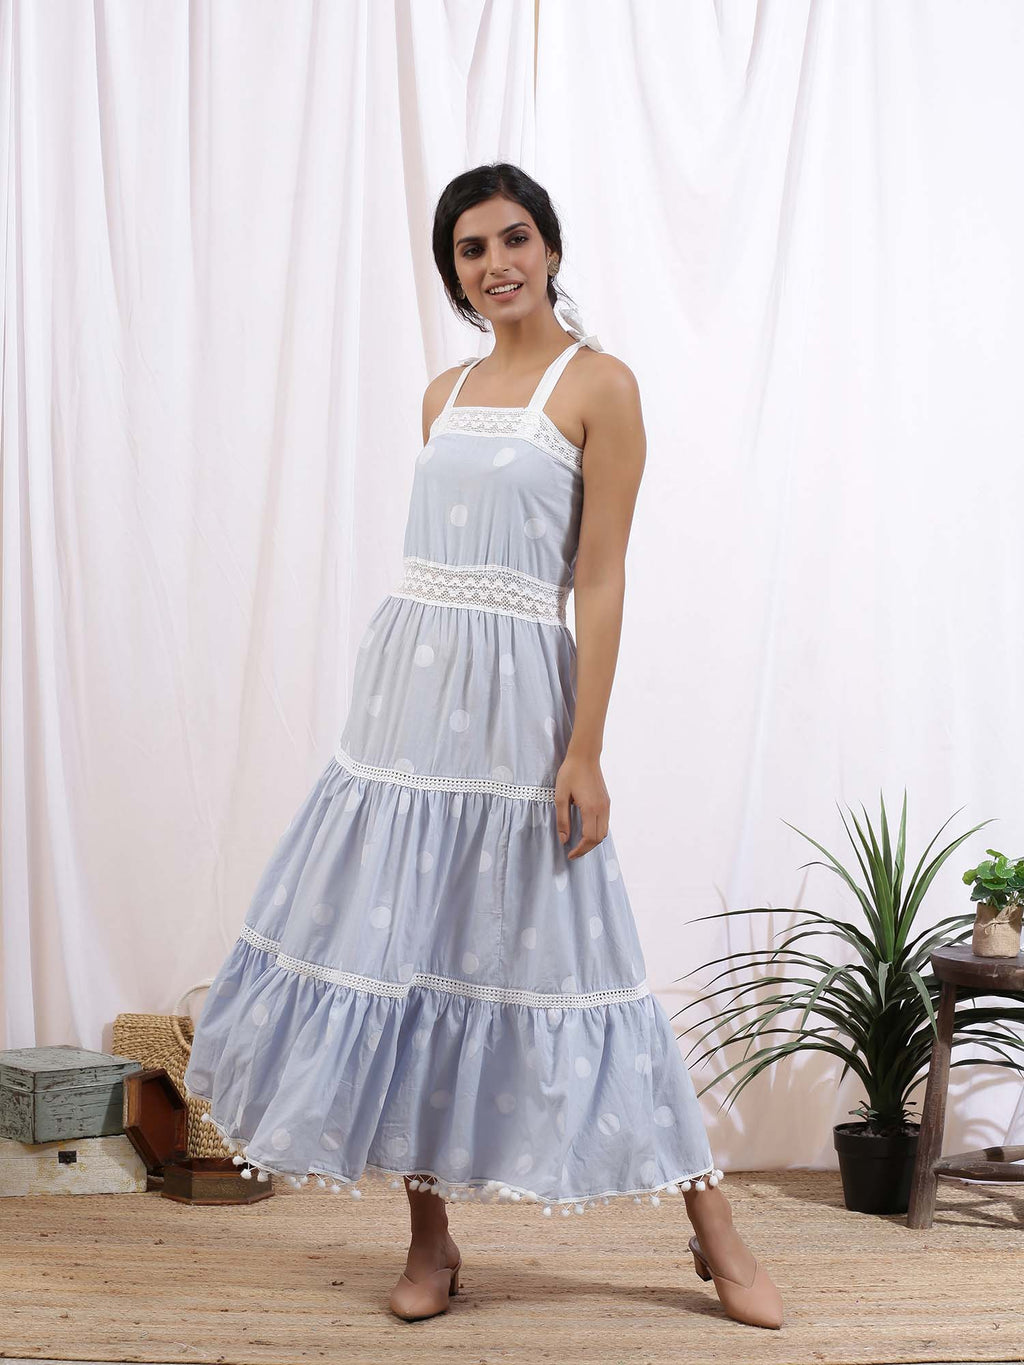 White and Blue Merilyne Dress - Riviera Closet